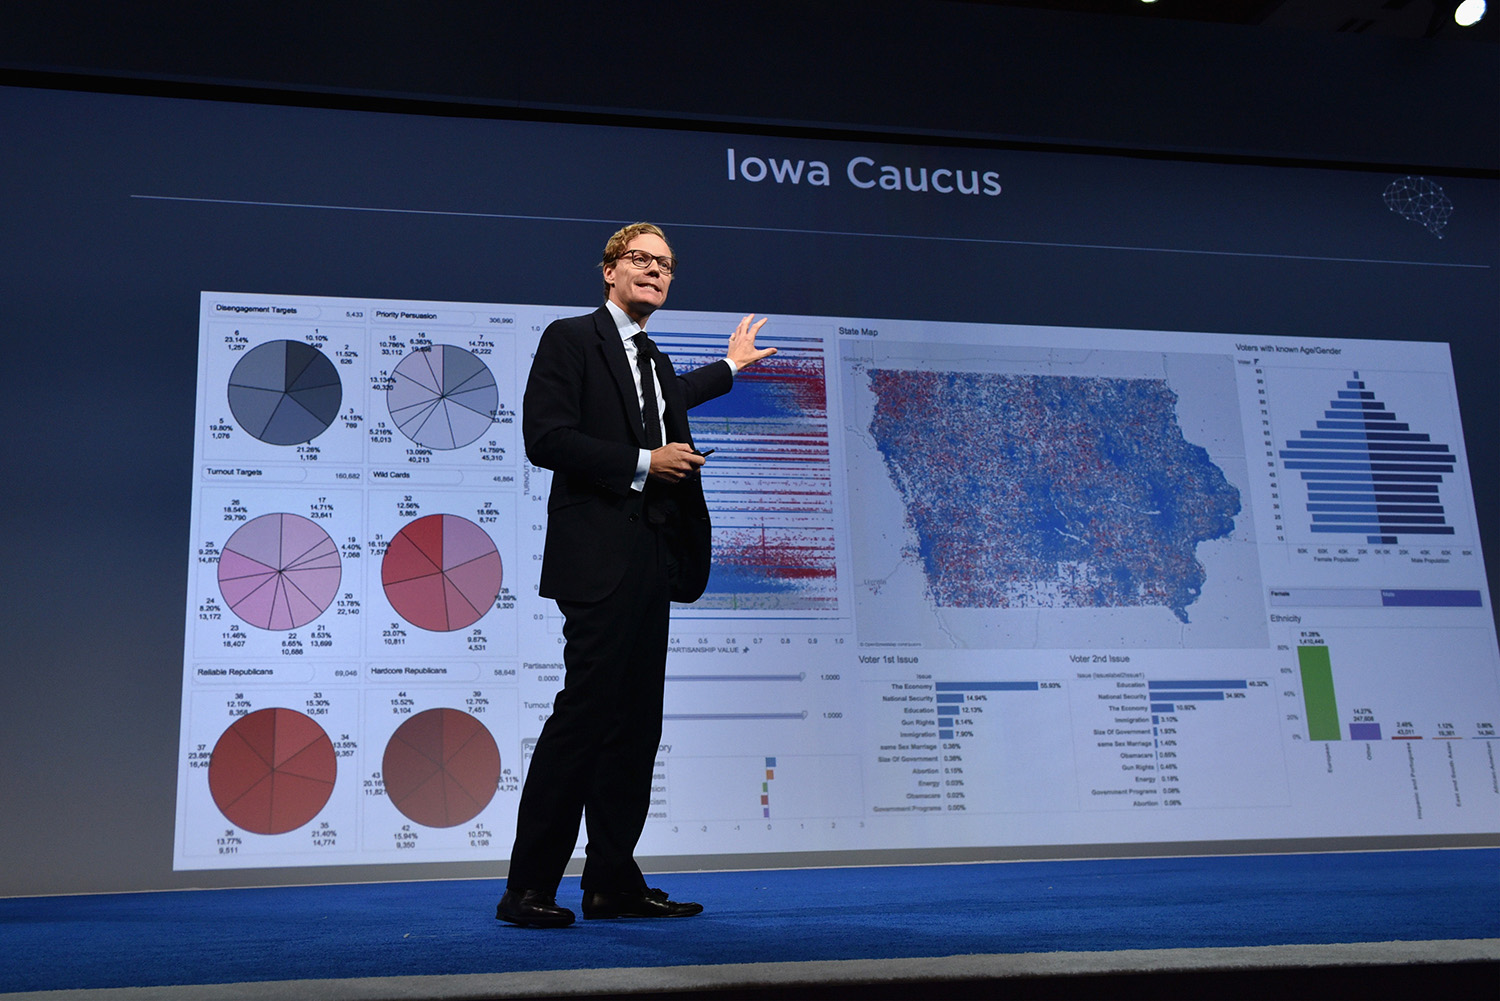 CEO of Cambridge Analytica Alexander Nix speaks at the 2016 Concordia Summit - Day 1 at Grand Hyatt New York on September 19, 2016 in New York City. (Bryan Bedder/Getty Images for Concordia Summit)